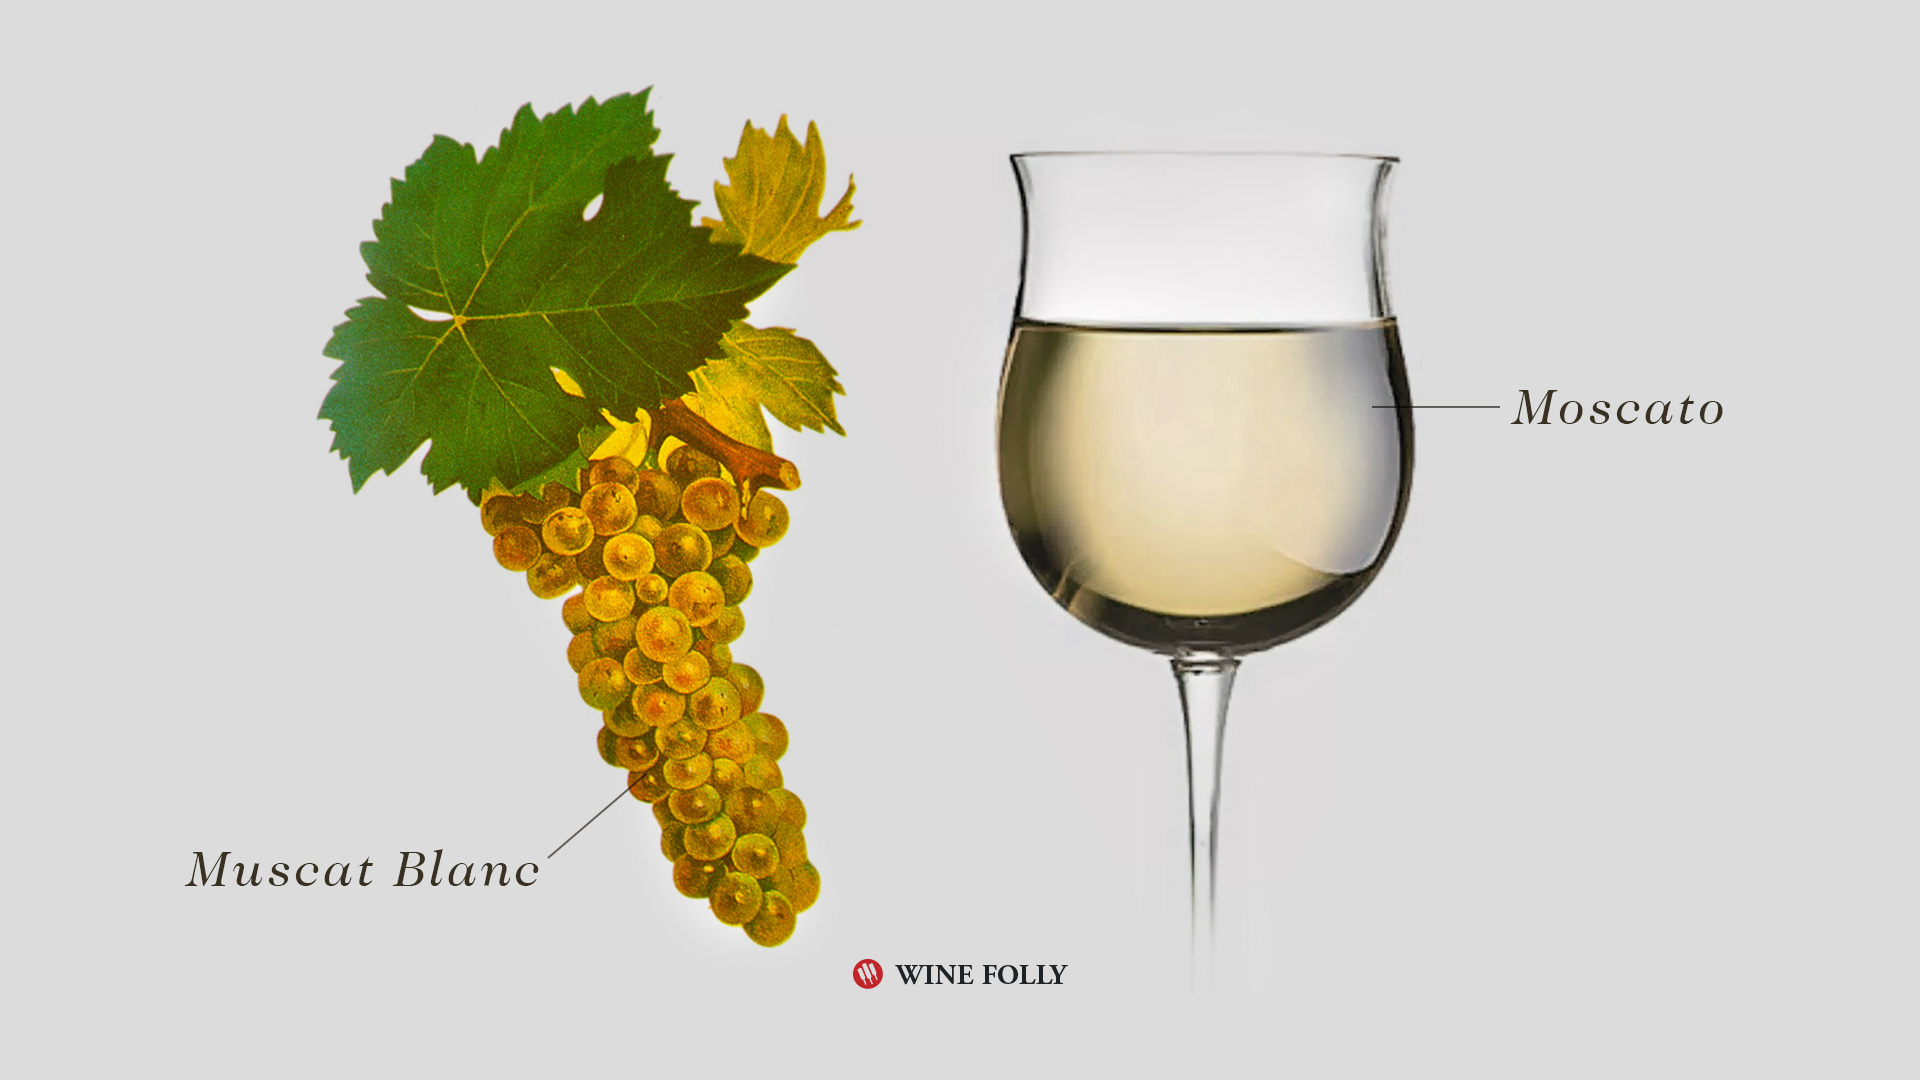 Moscato-Wine-Muscat-Blanc-Grape-WineFolly.jpg